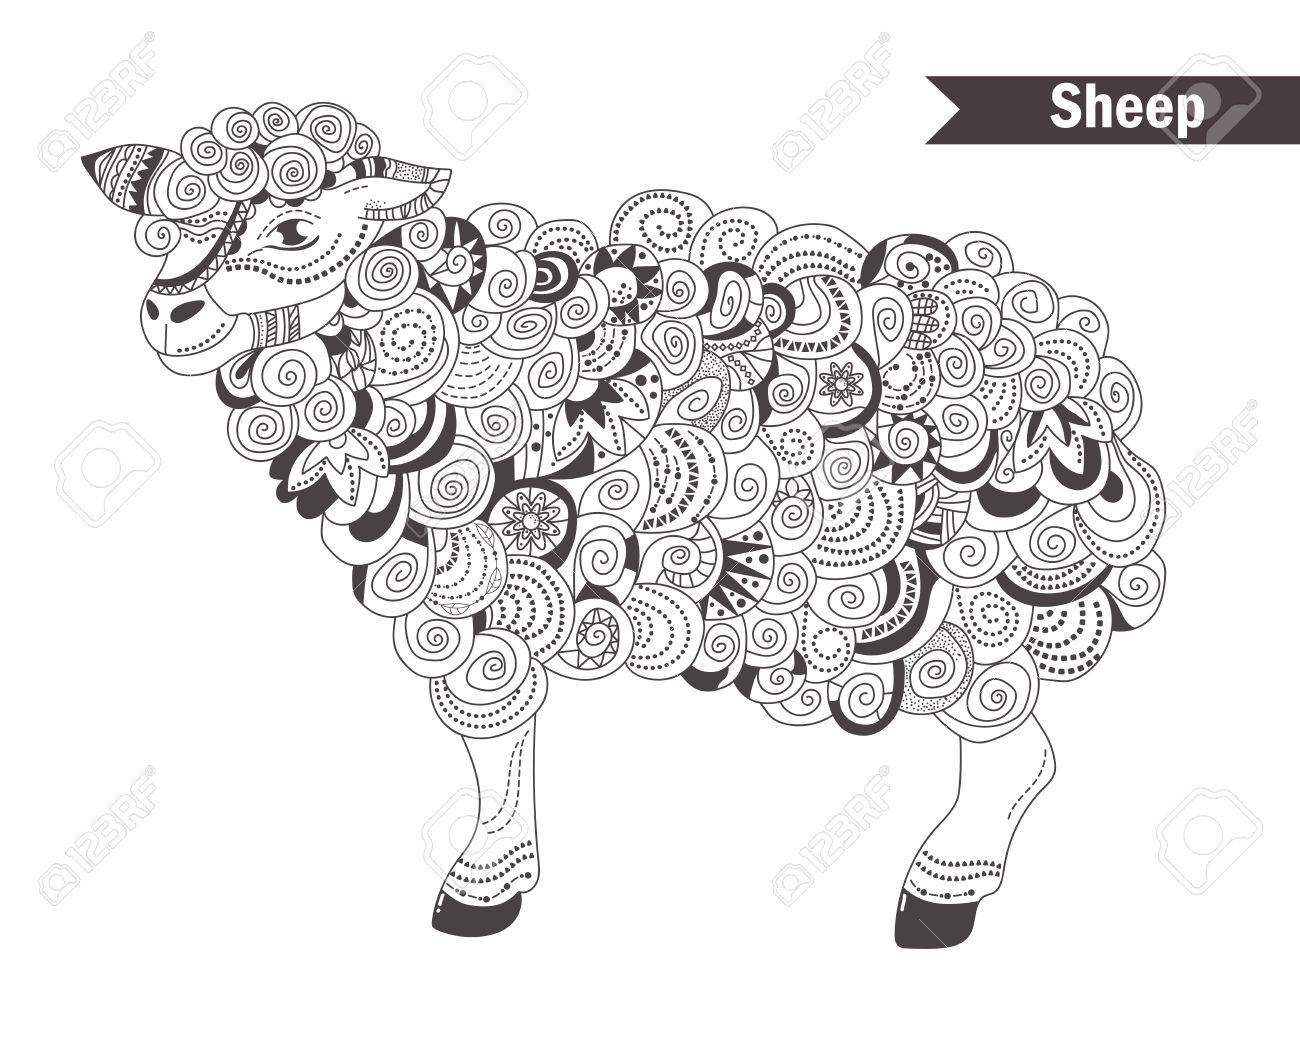 Sheep Coloring Book For Adult Antistress Coloring Pages Hand